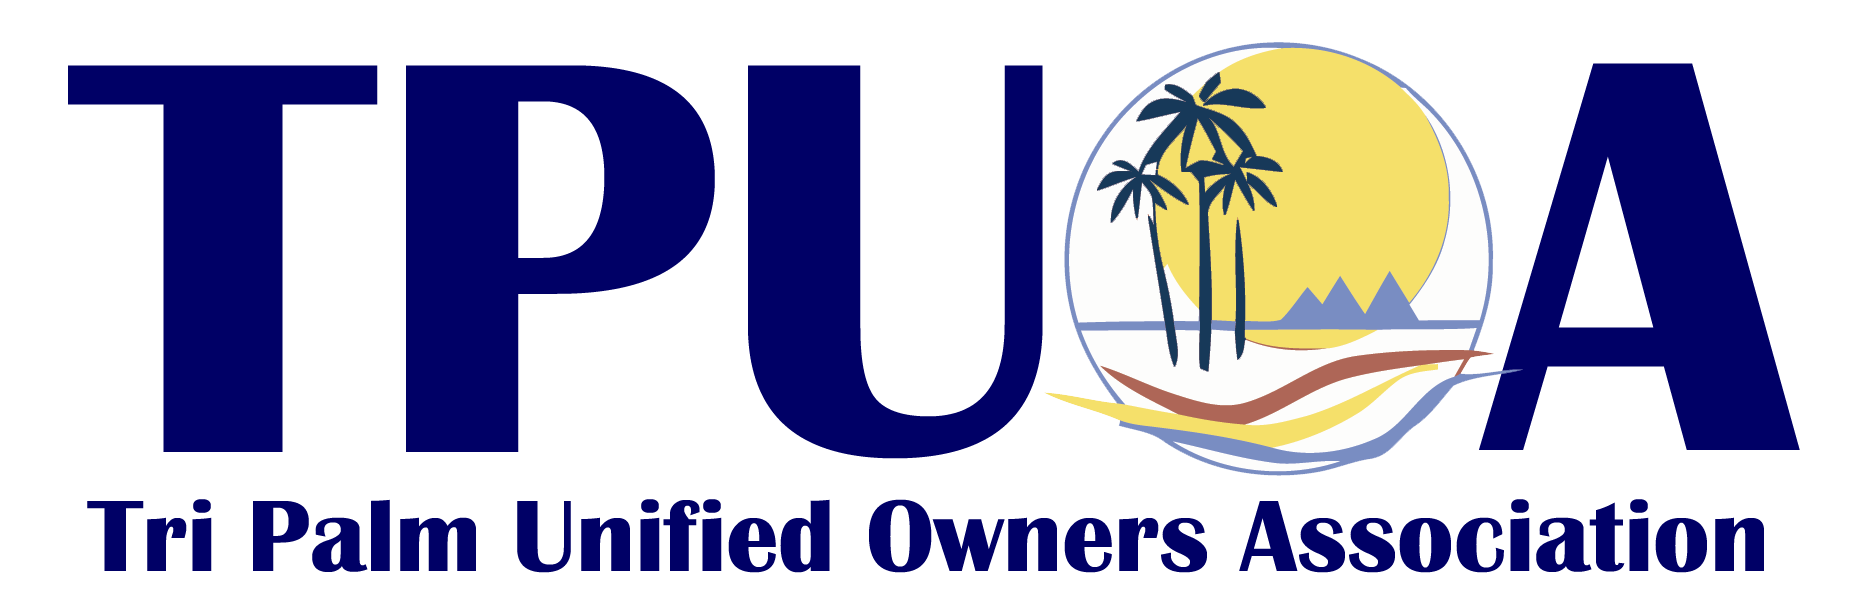 Tri Palm Unified Owners Association